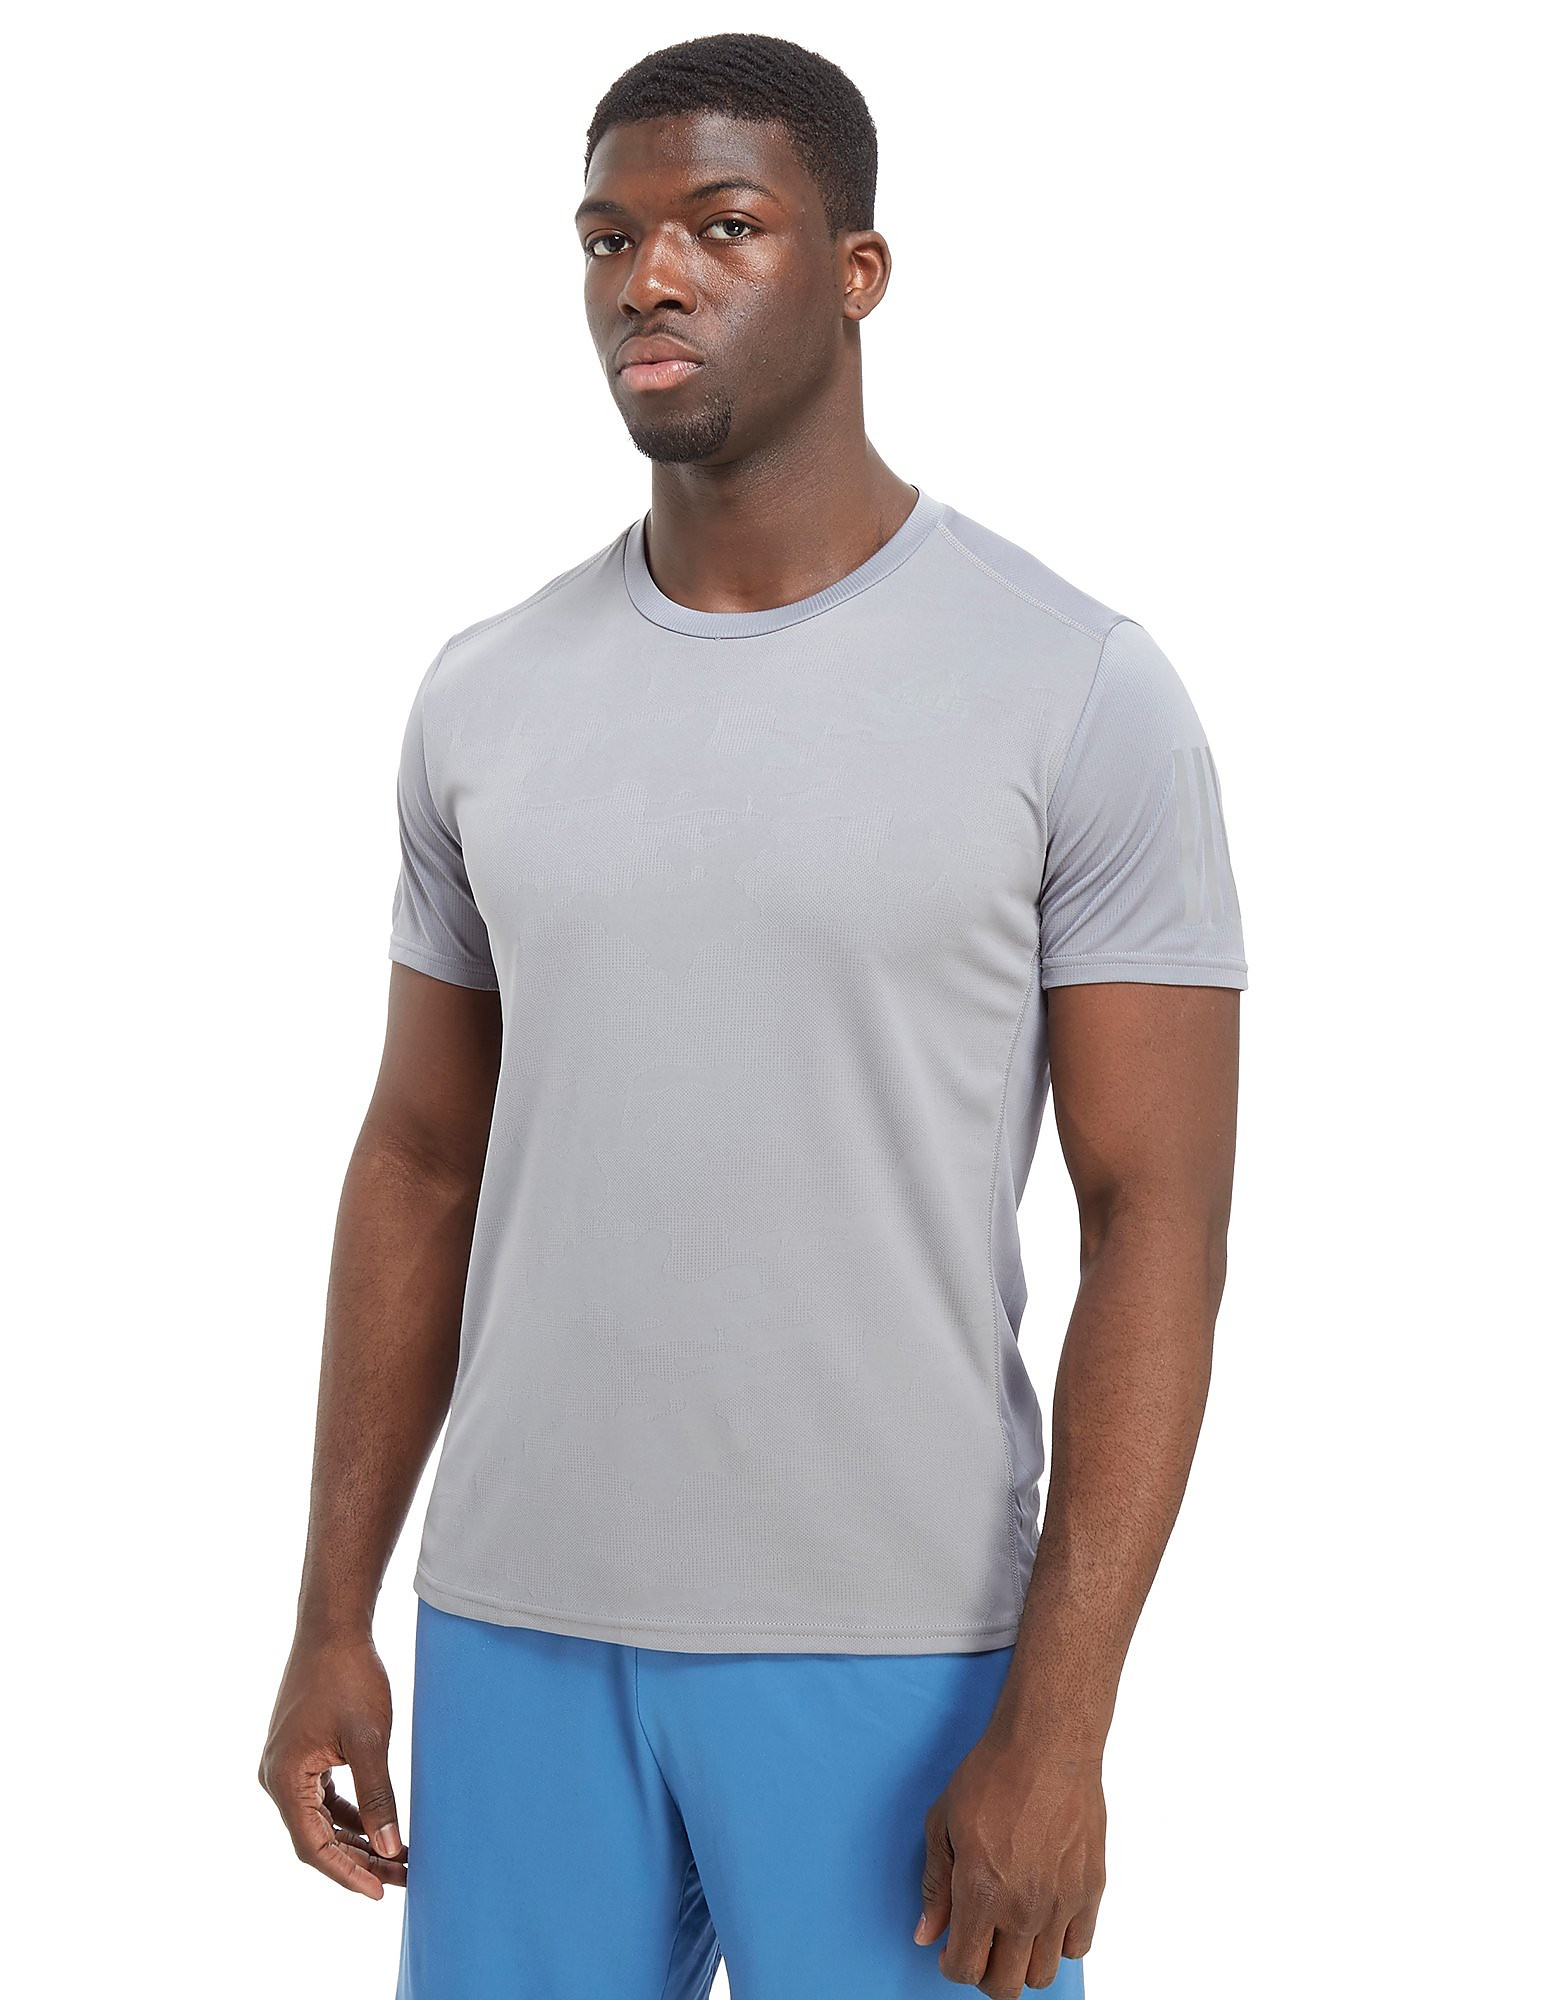 adidas Response Short Sleeved T-Shirt